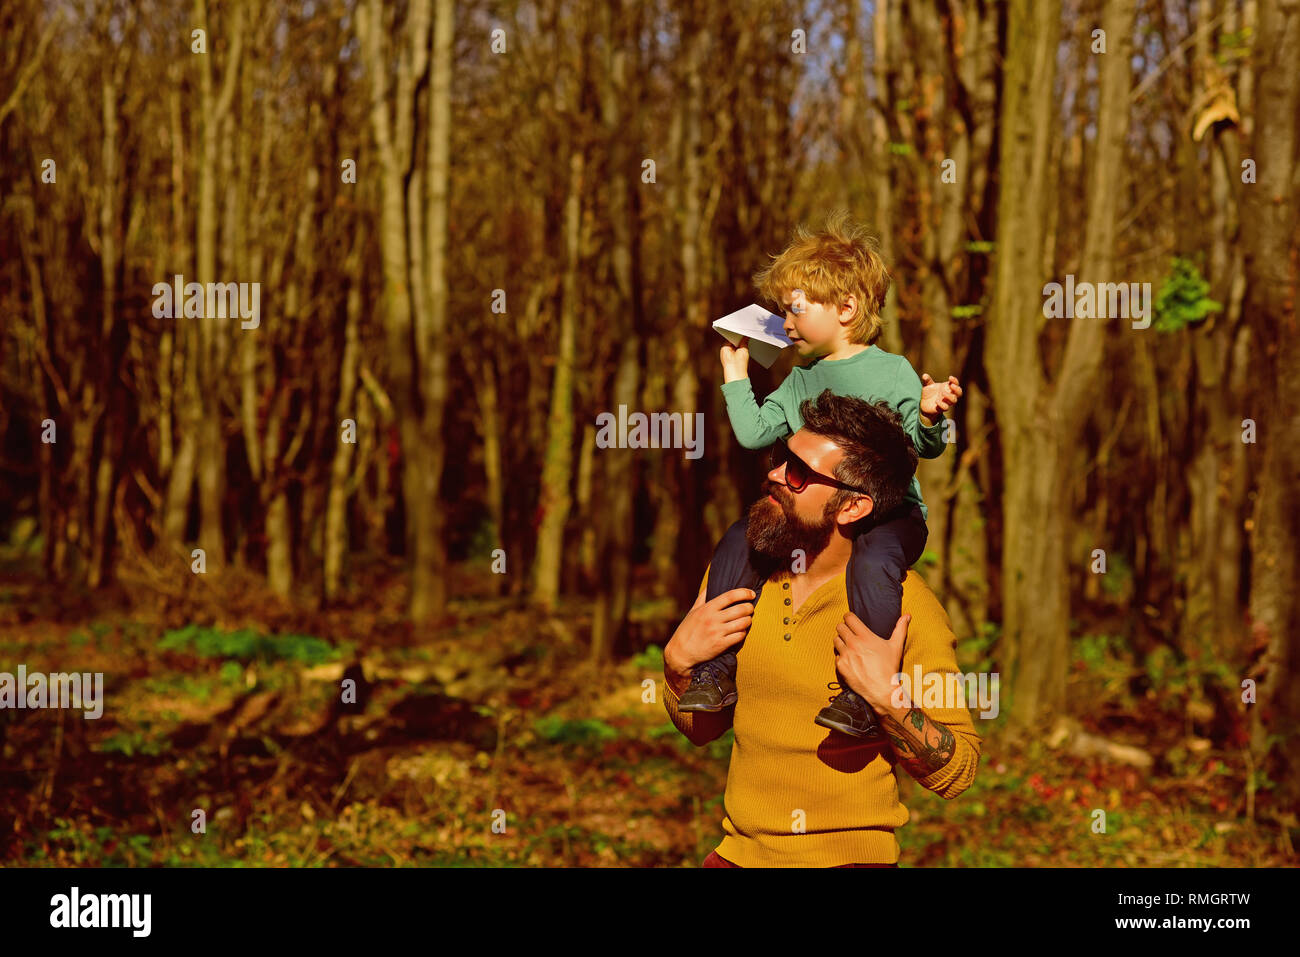 Pleasure is a path to joy. Father give little child piggybacking in pleasure park. Father and son spend time together - Stock Image